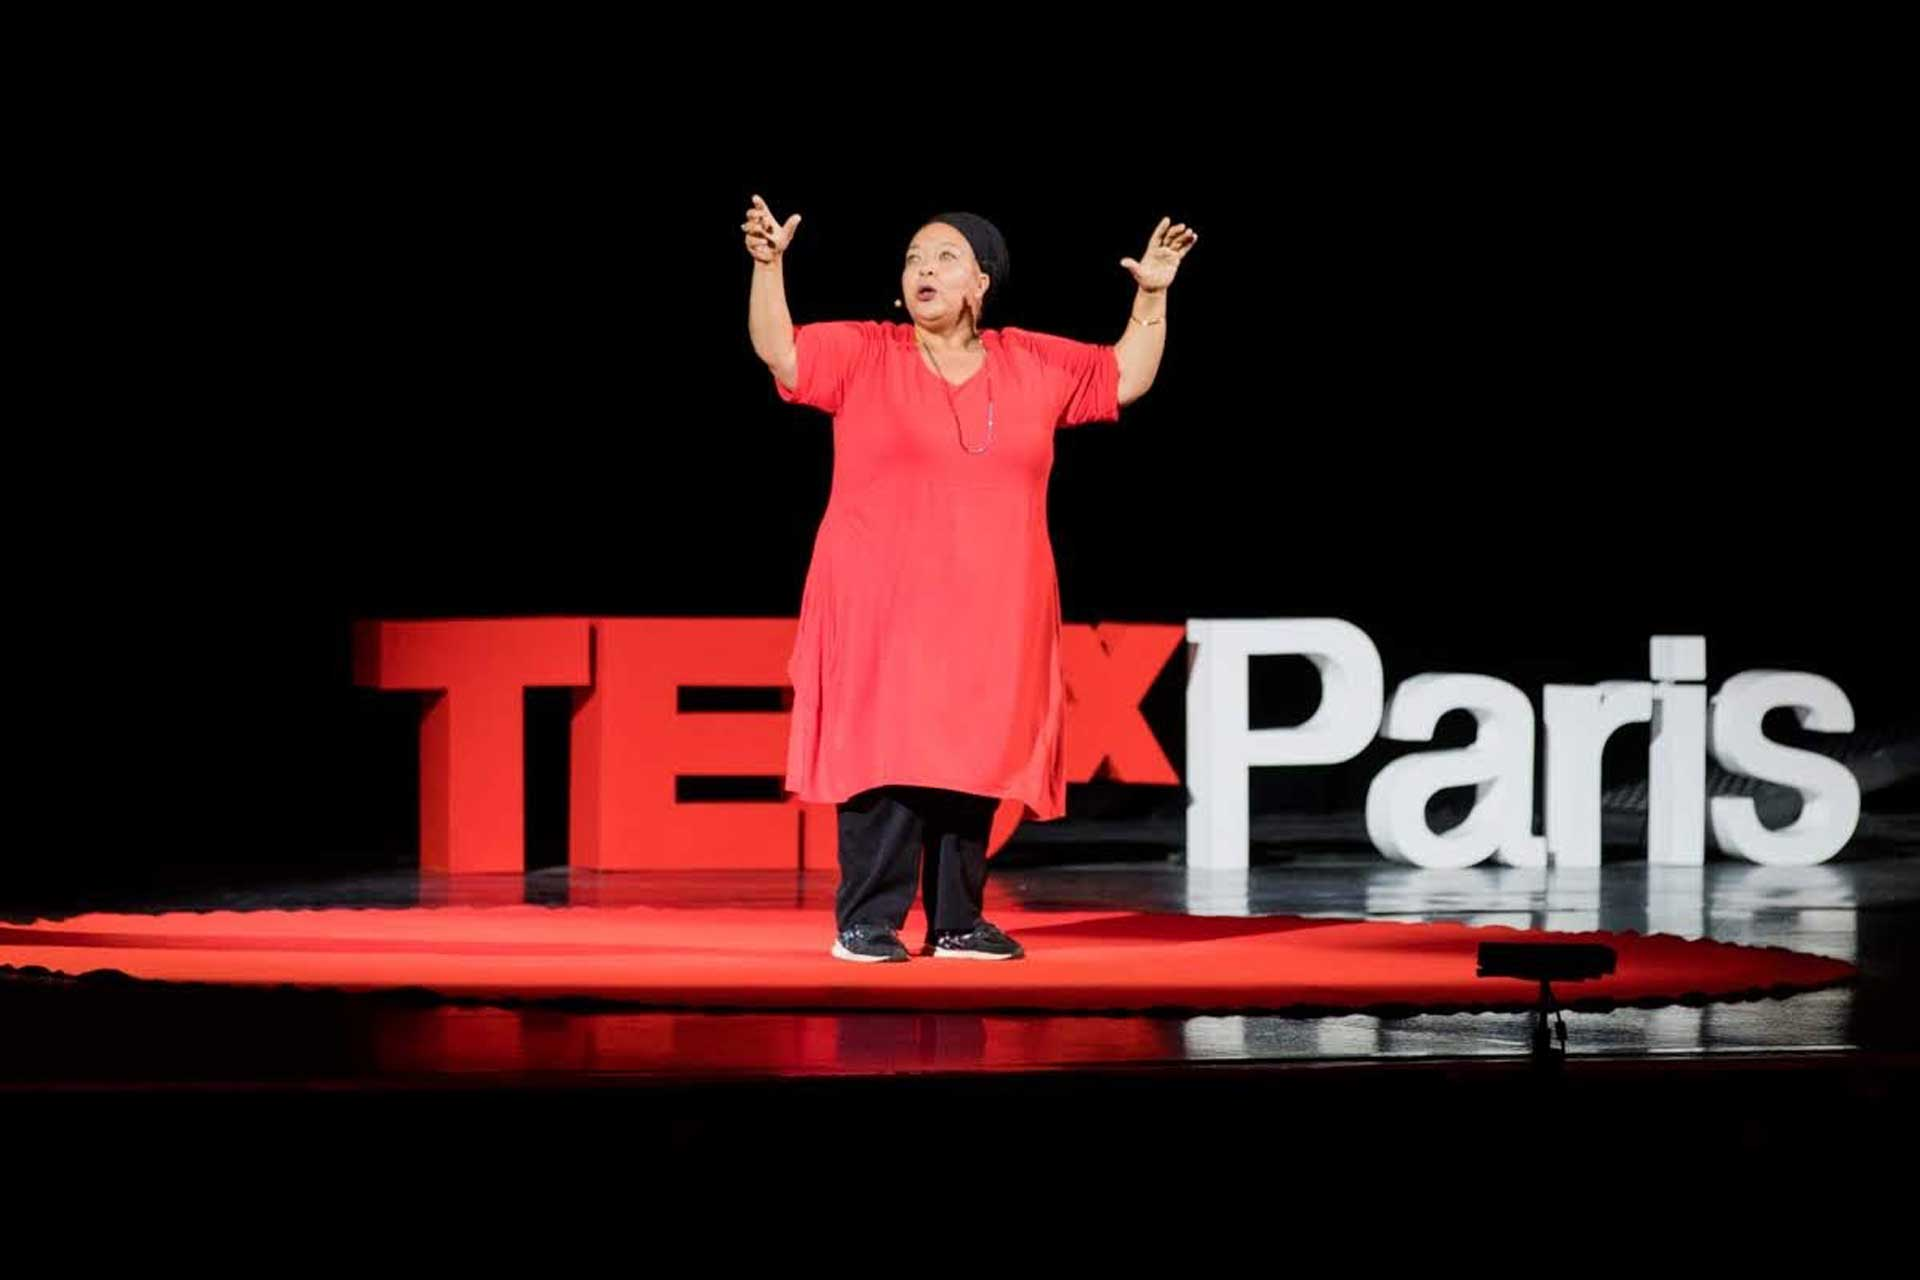 conference-TEDxParis-2017-6.jpg